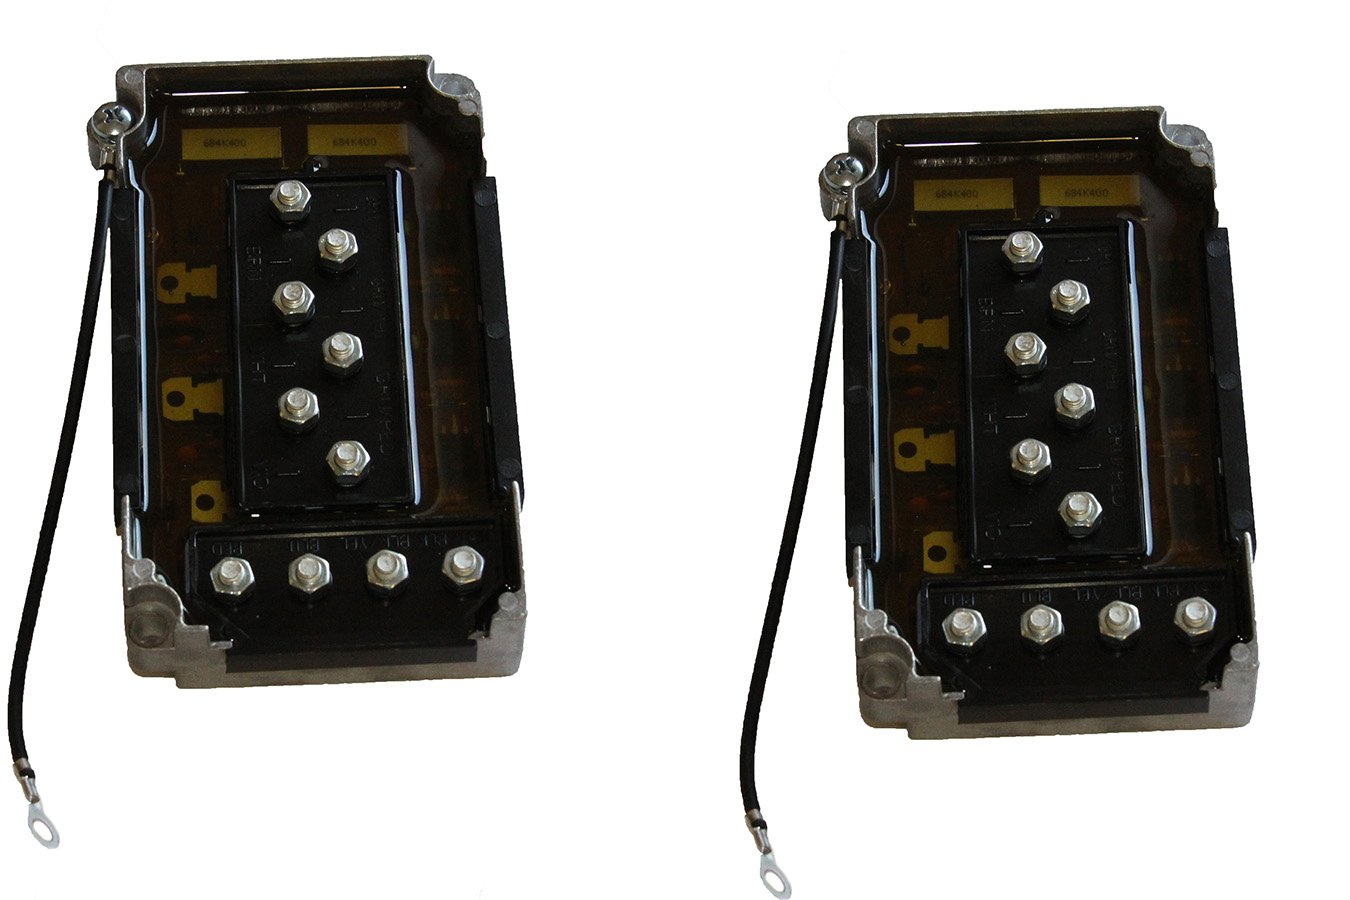 TWO (2) CDI Switch Box 90/115/150/200 Mercury Outboard Motor 332-7778A12 332-7778A9 332-7778A6 332-7778A3 Switchbox by EMS Global Direct